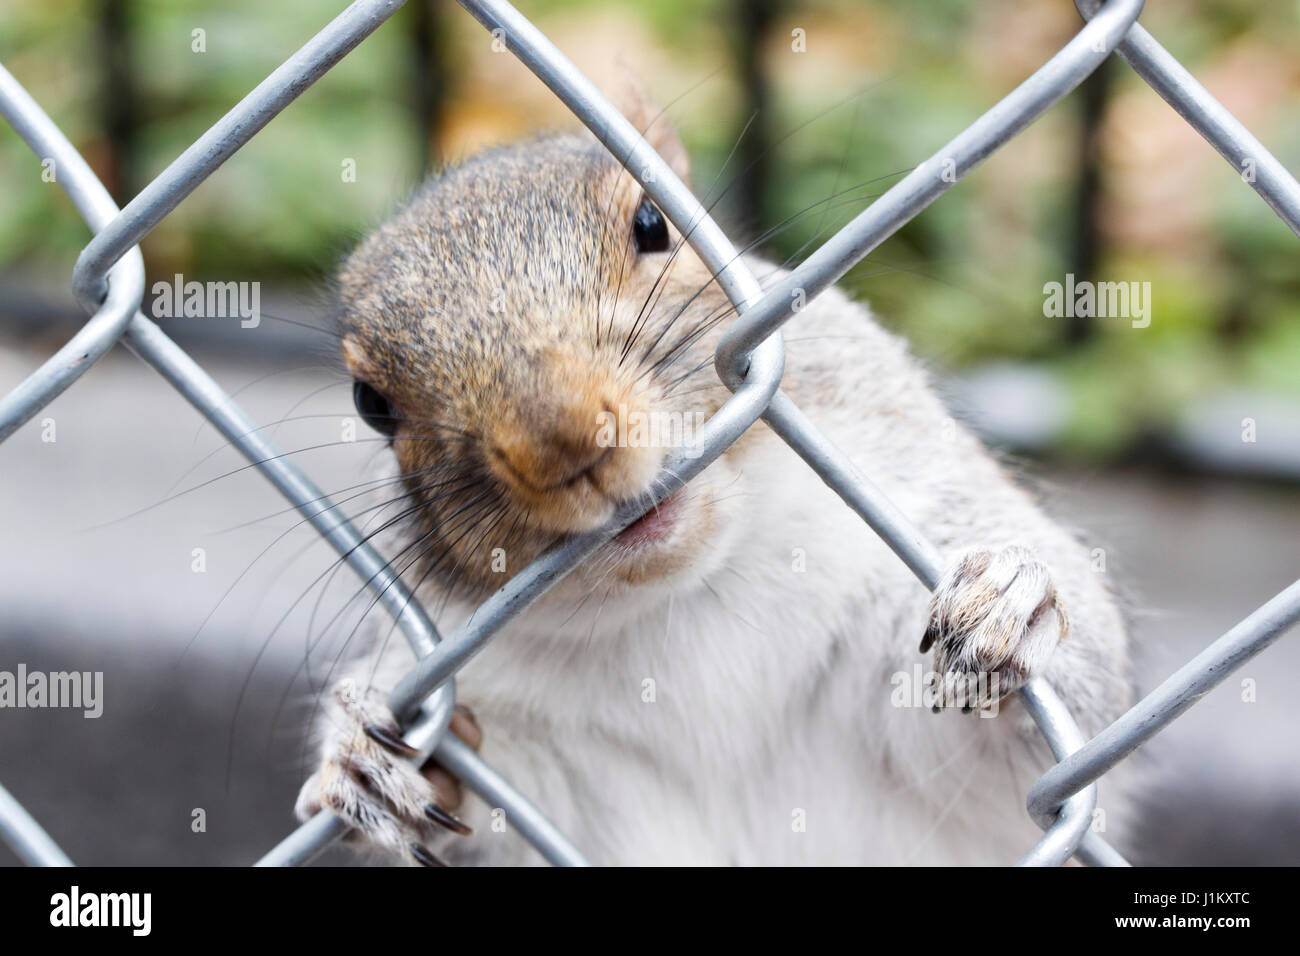 A comical squirrel holding onto and chewing a wire fence Stock Photo ...